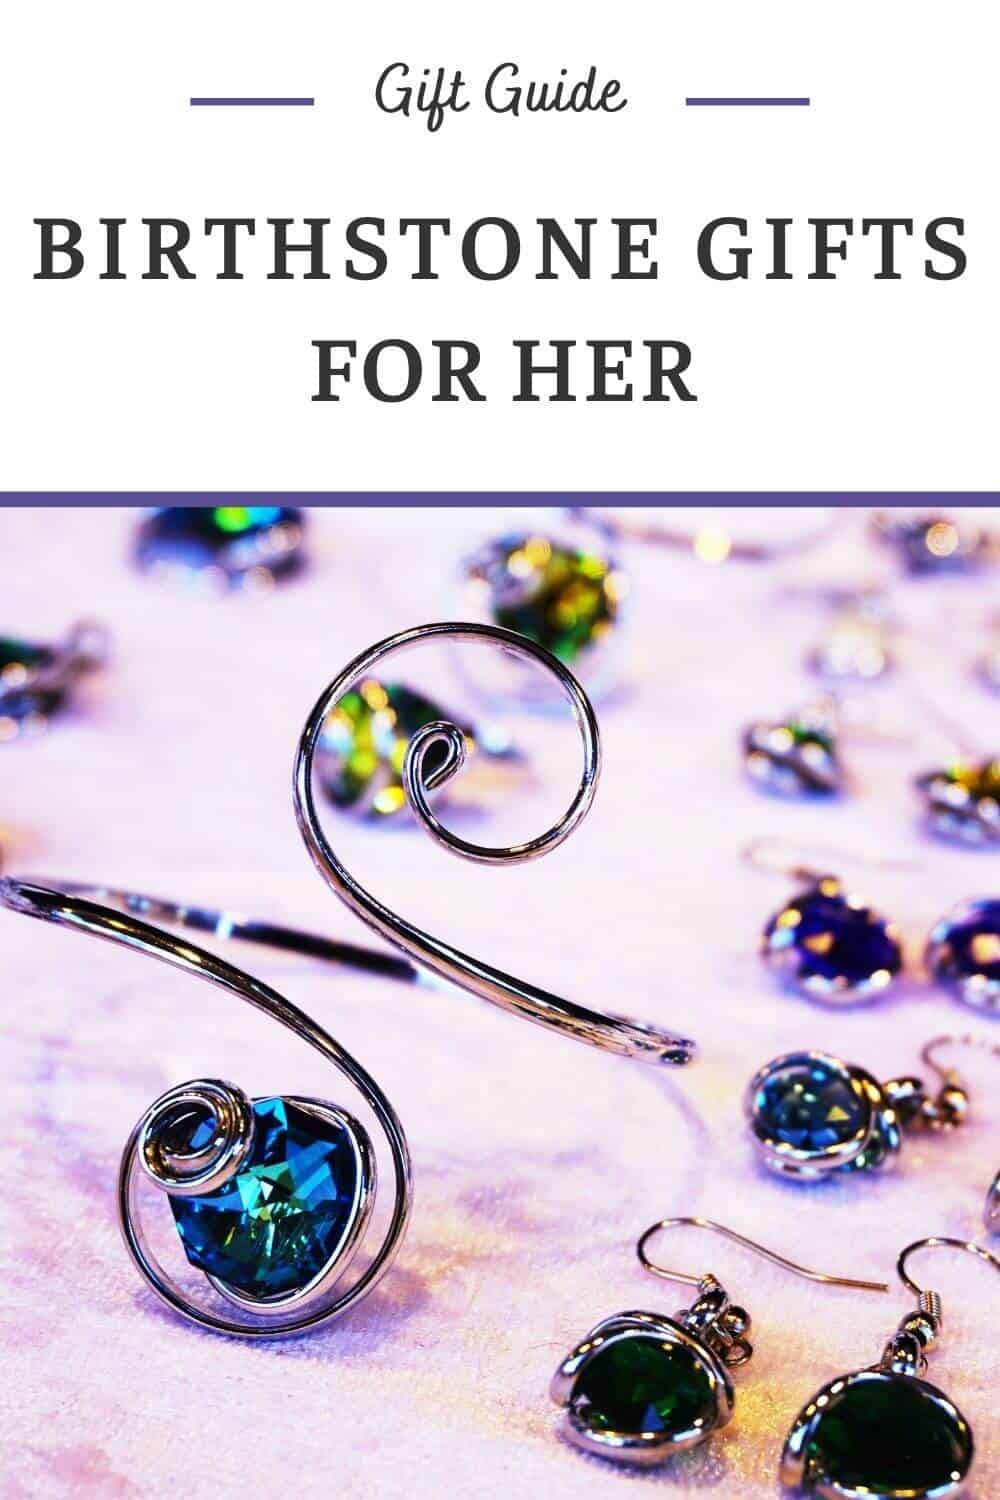 Birthstone Gifts for Her - Gemstone Gifts by Month